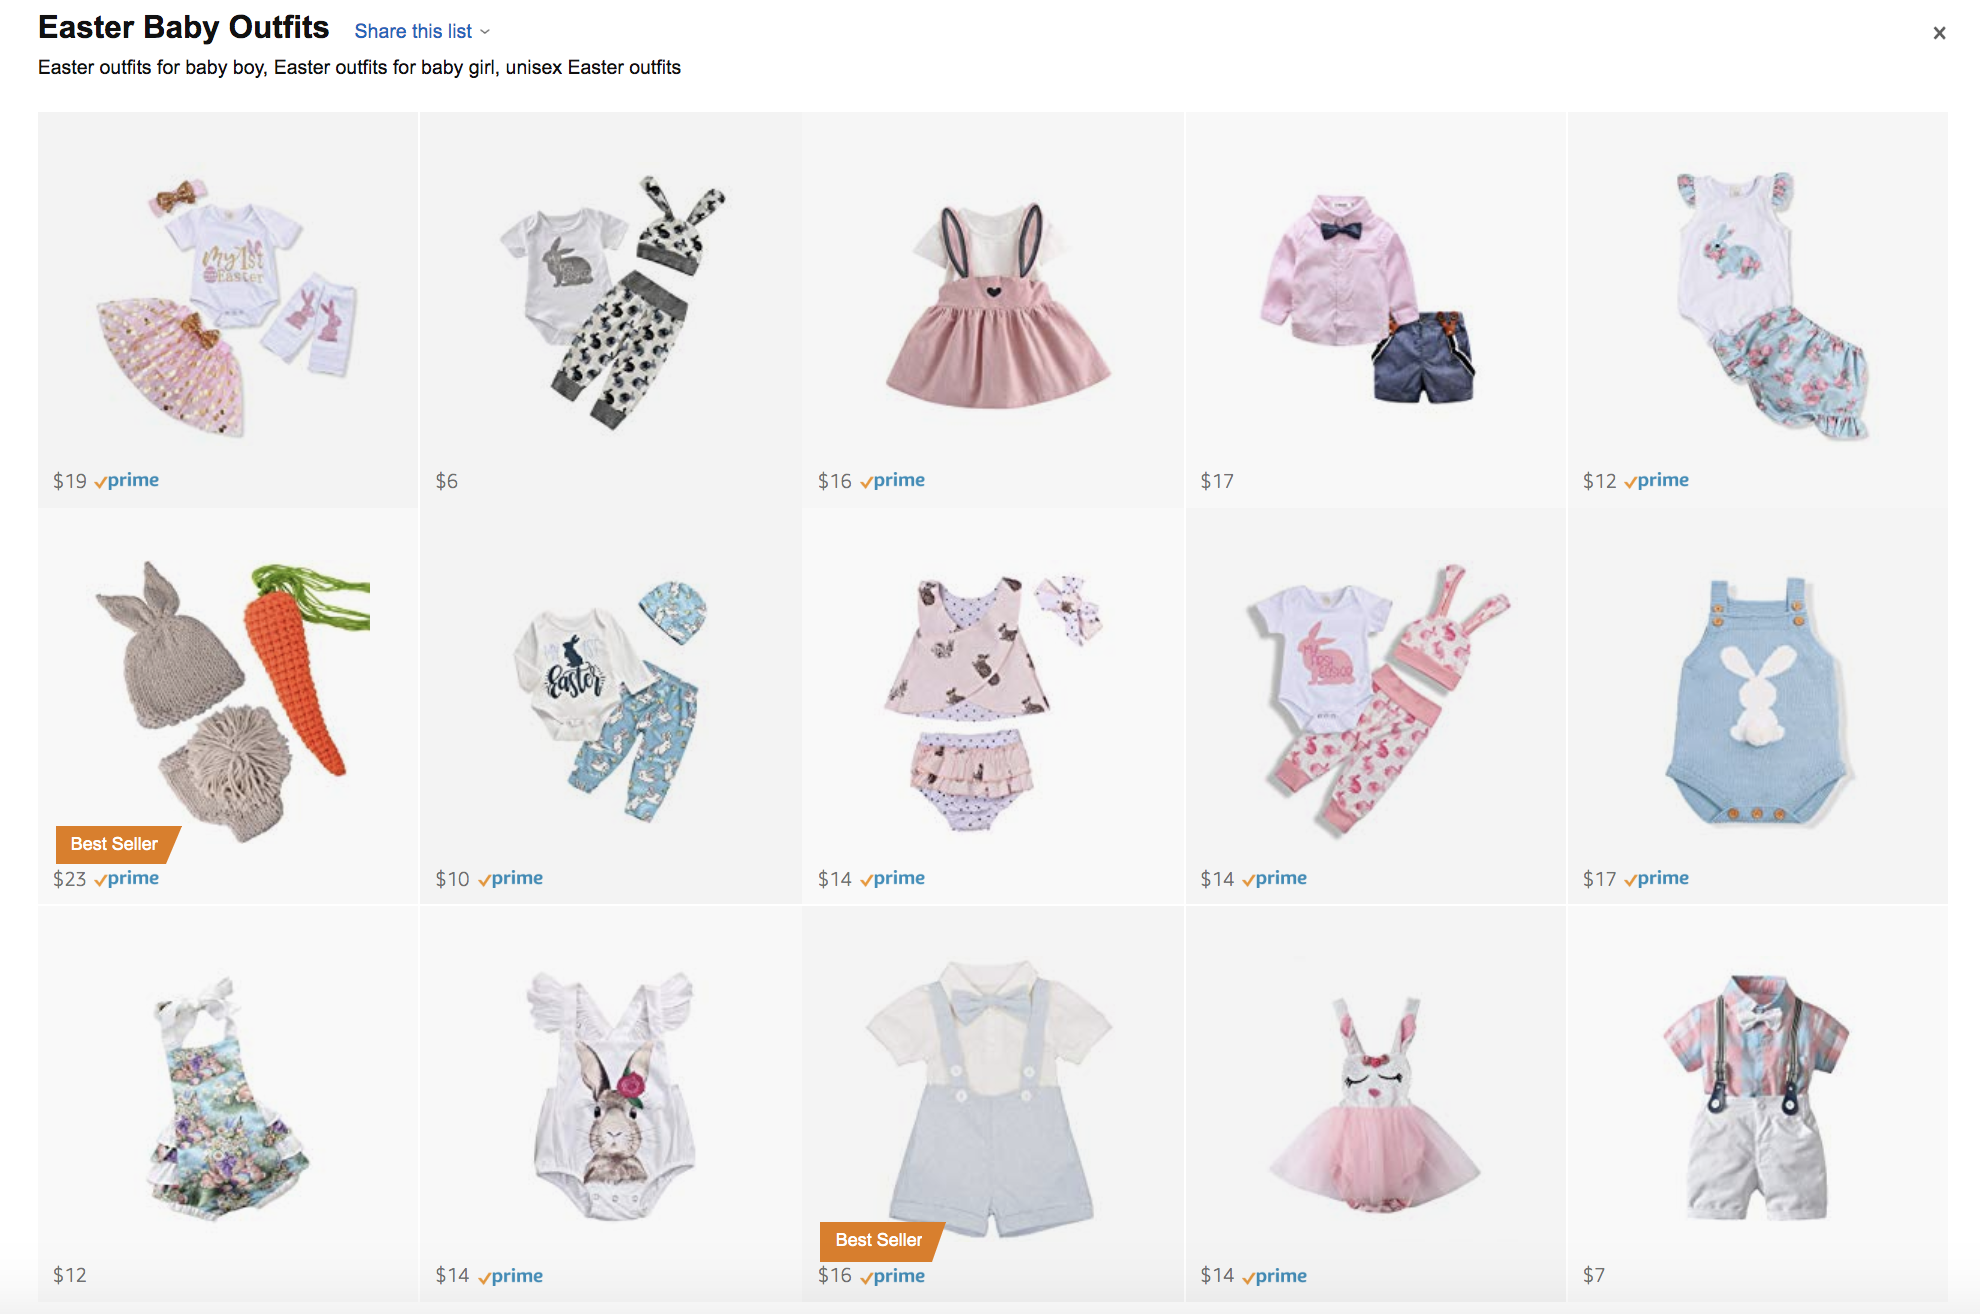 Easter Baby Outfits